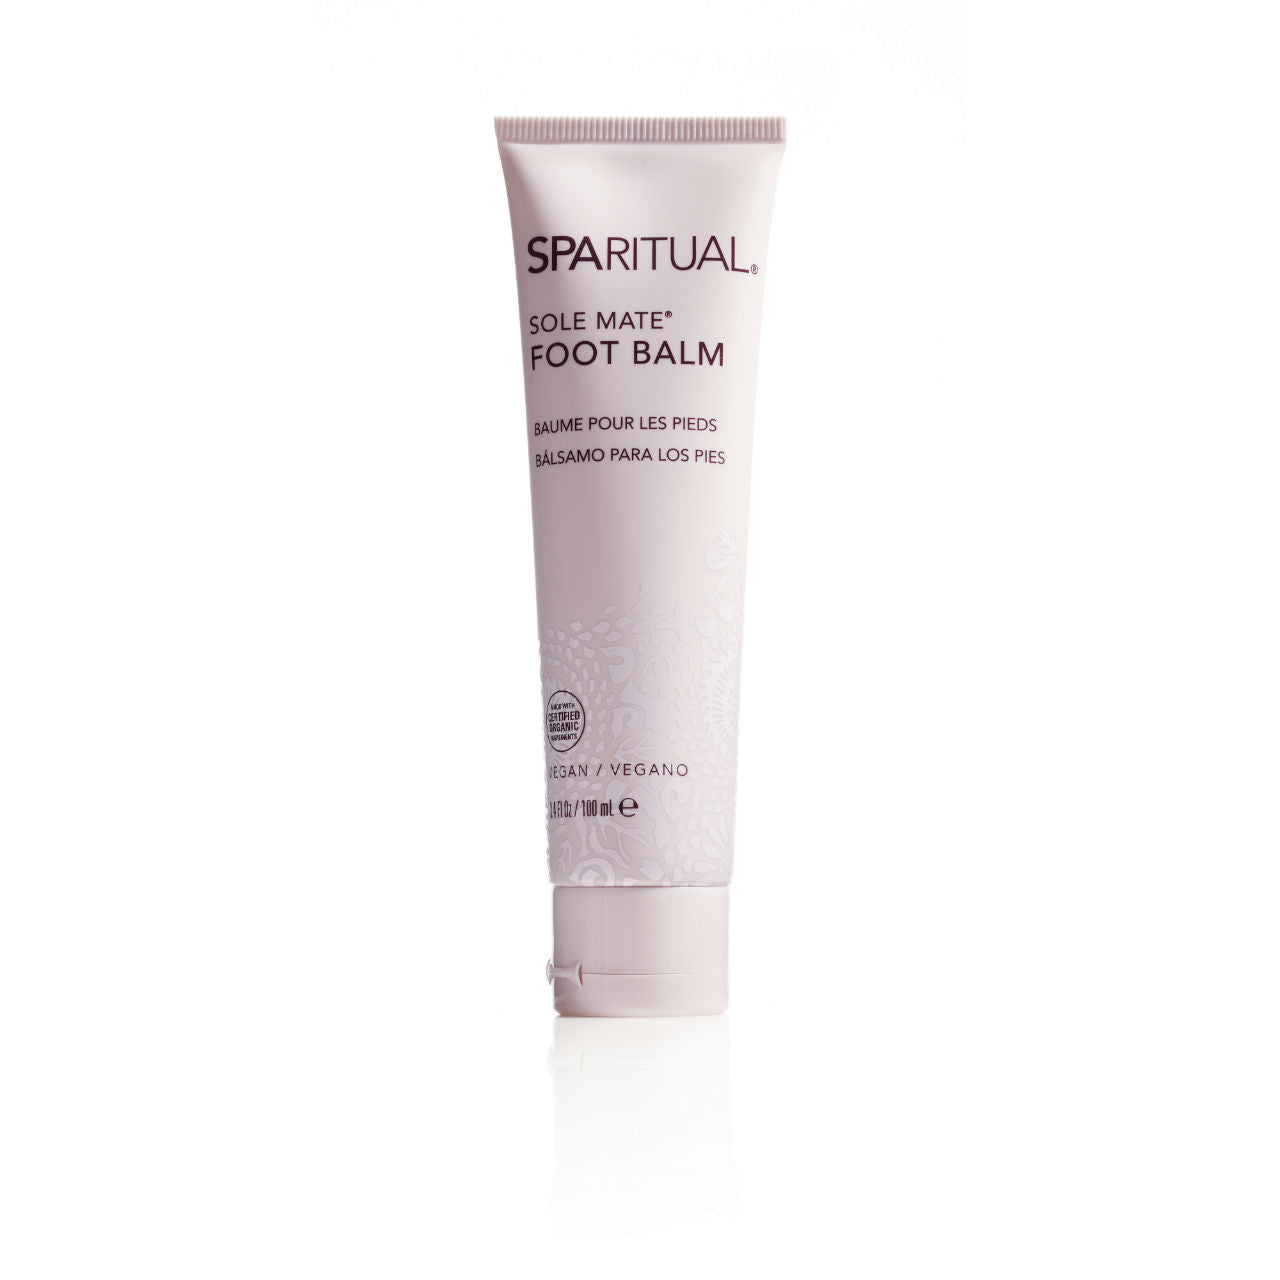 SPARITUAL Sole Mate® Foot Balm Tube